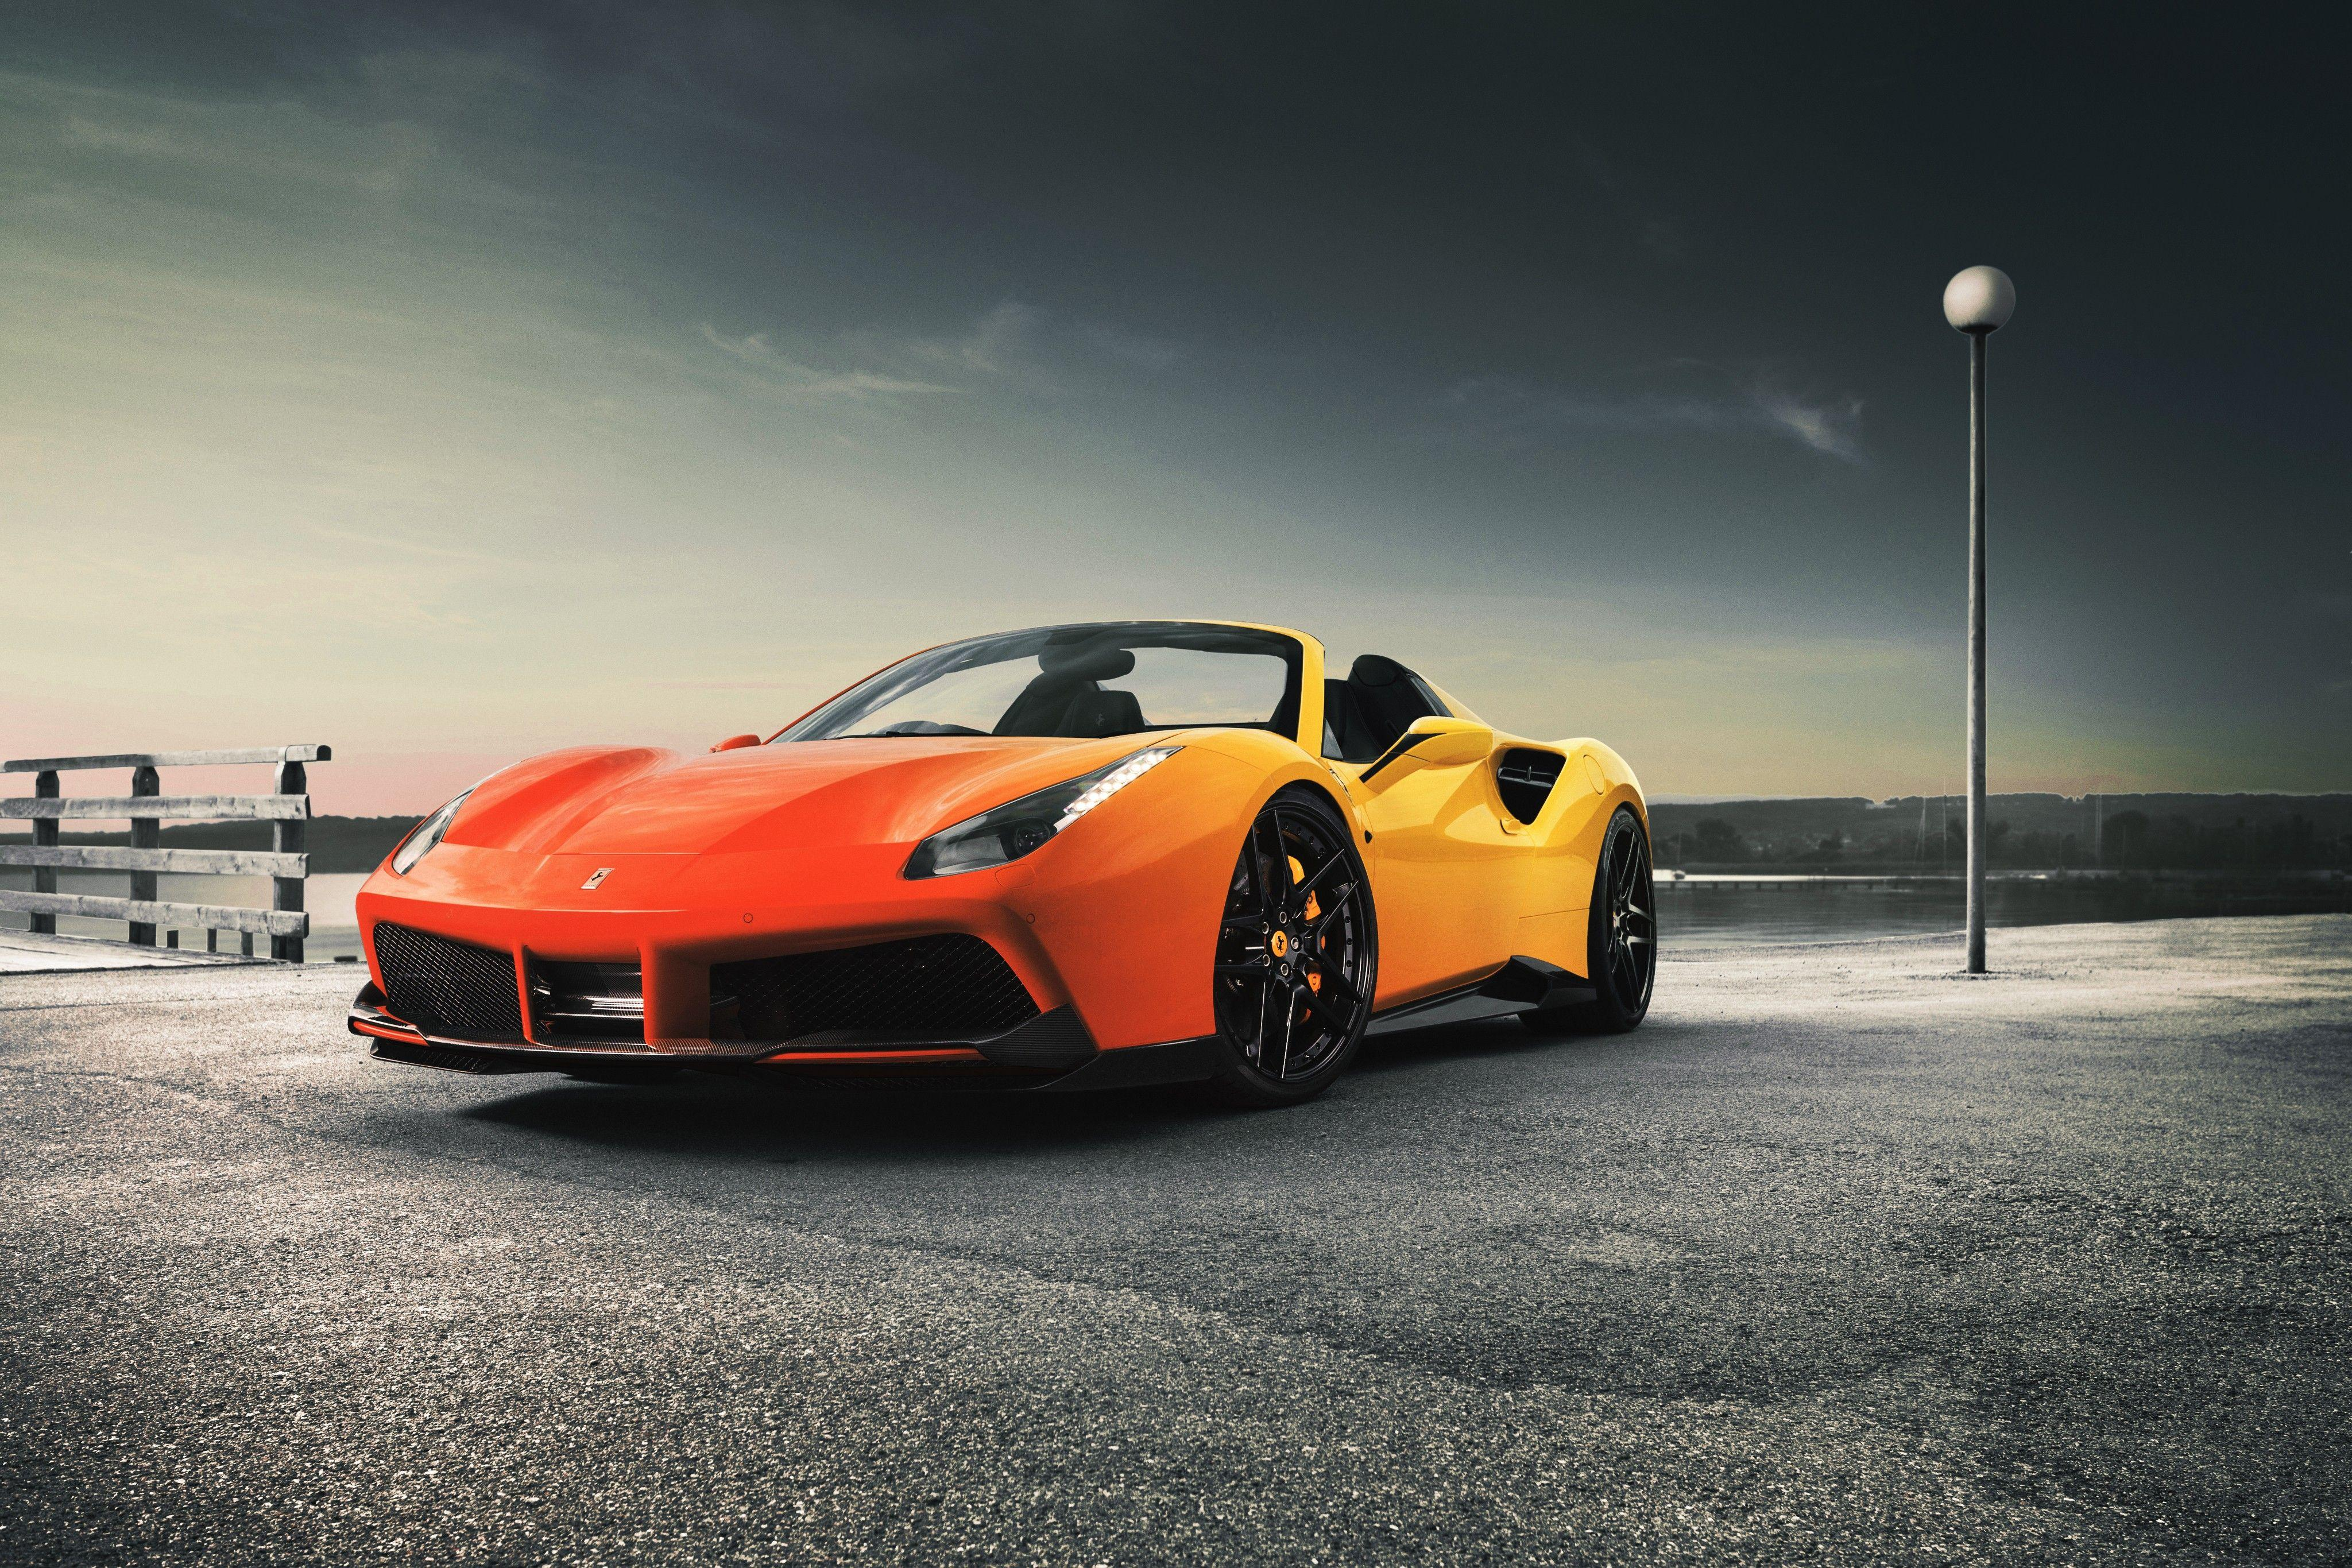 Orange sports car Ferrari 488 Spider wallpapers and image